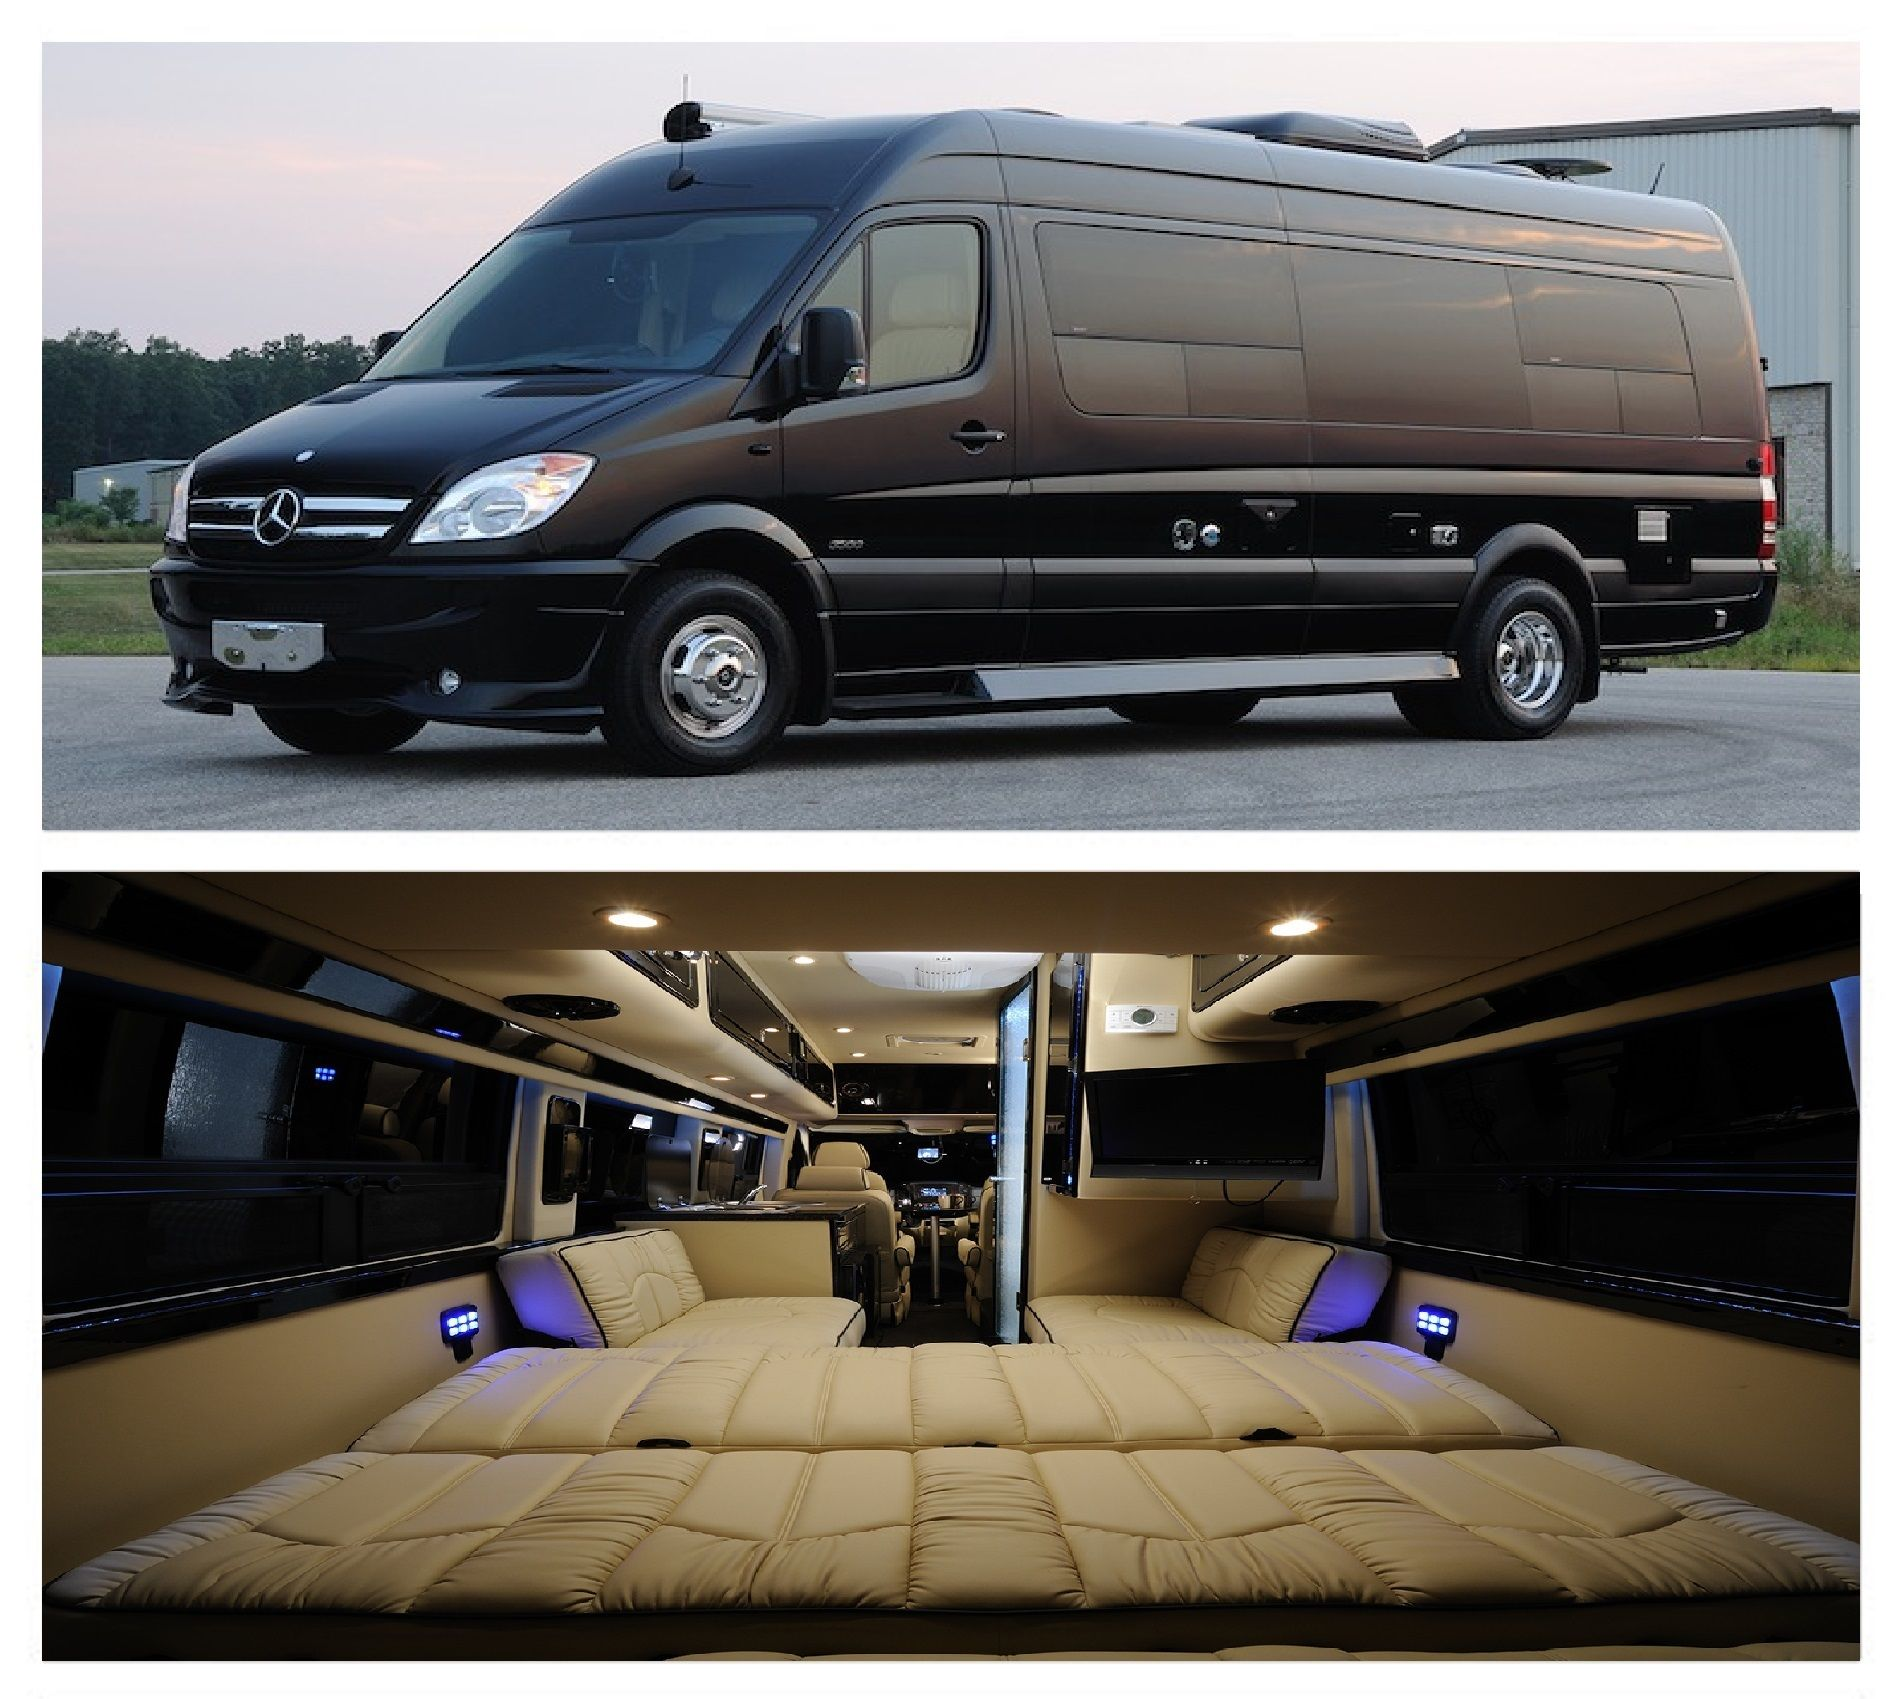 weekender mercedes benz sprinter rv camper van http. Black Bedroom Furniture Sets. Home Design Ideas